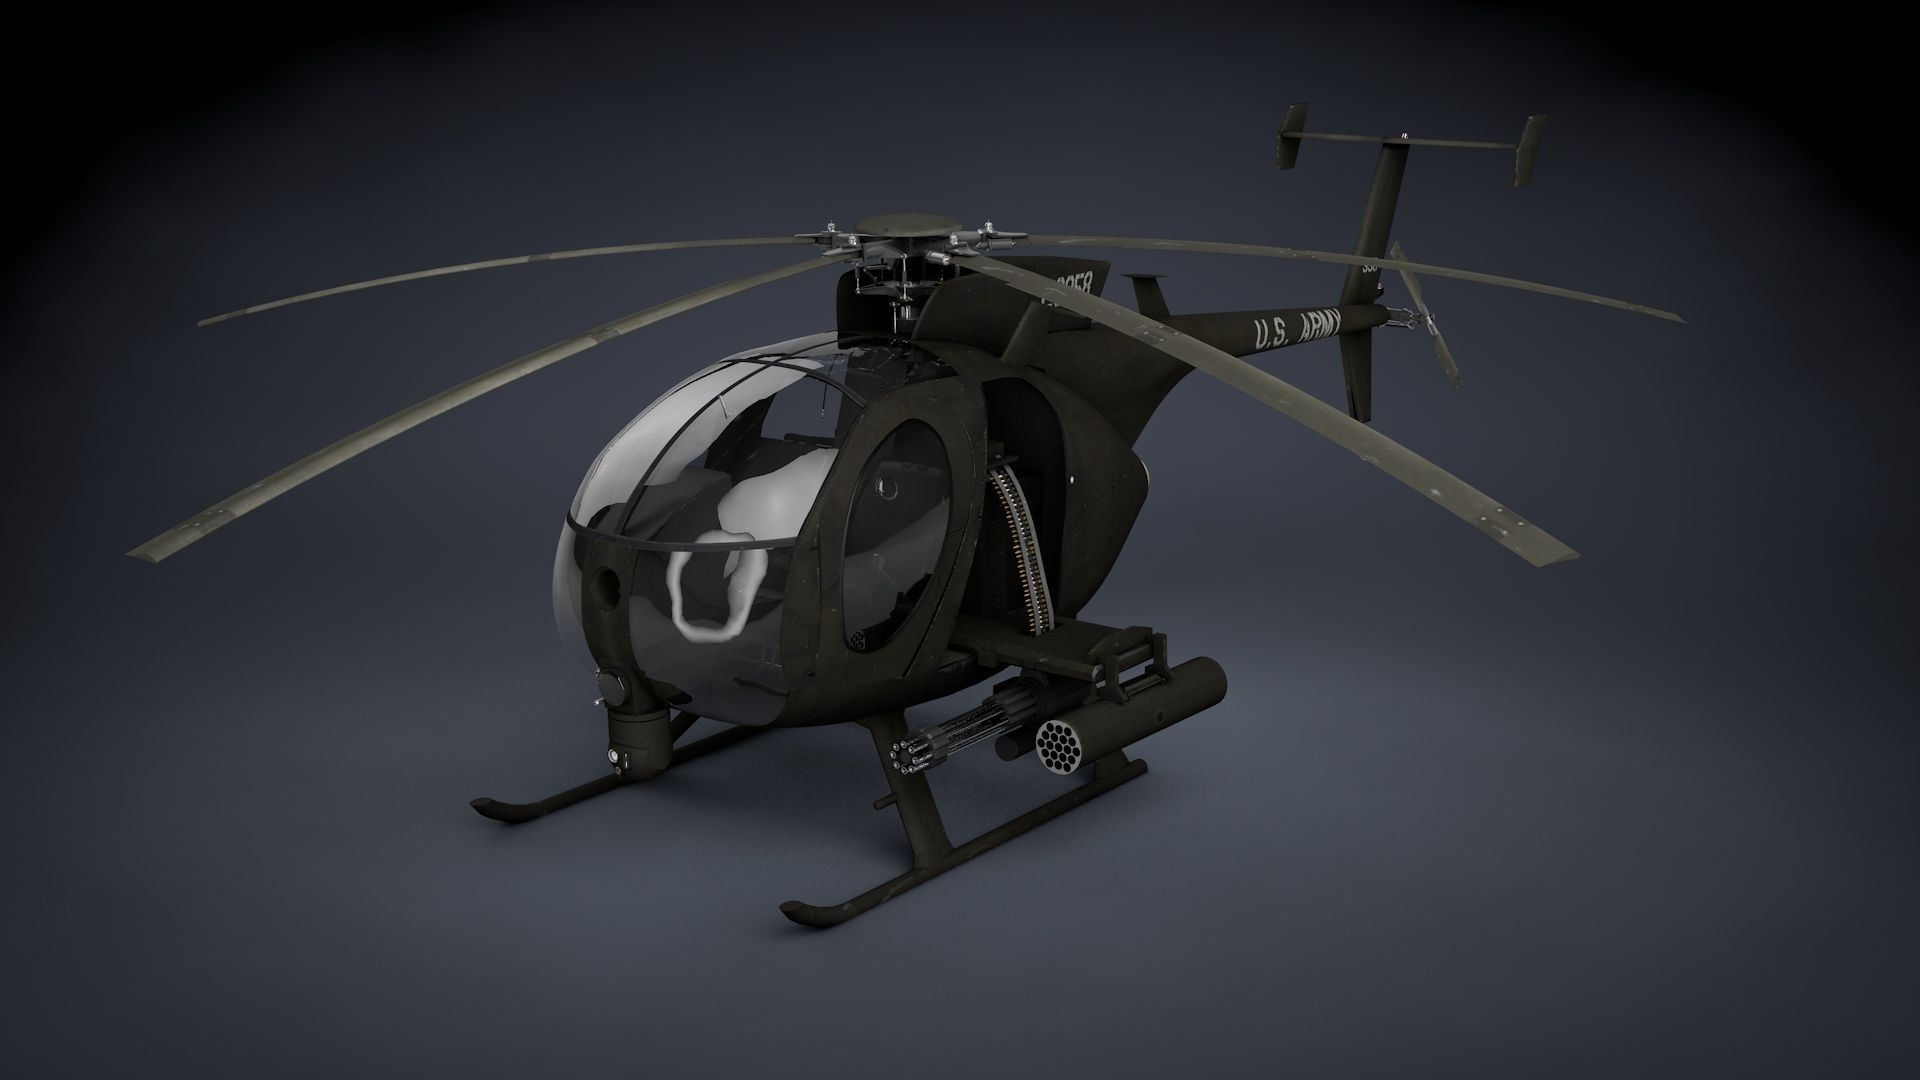 notar helicopters with Mh 6 Little Bird Gunship on How Can A Helicopter Be Designed Without A Tail Rotor likewise Watch likewise RN 081 besides Mh 6 Little Bird Gunship likewise Md 600n Update.